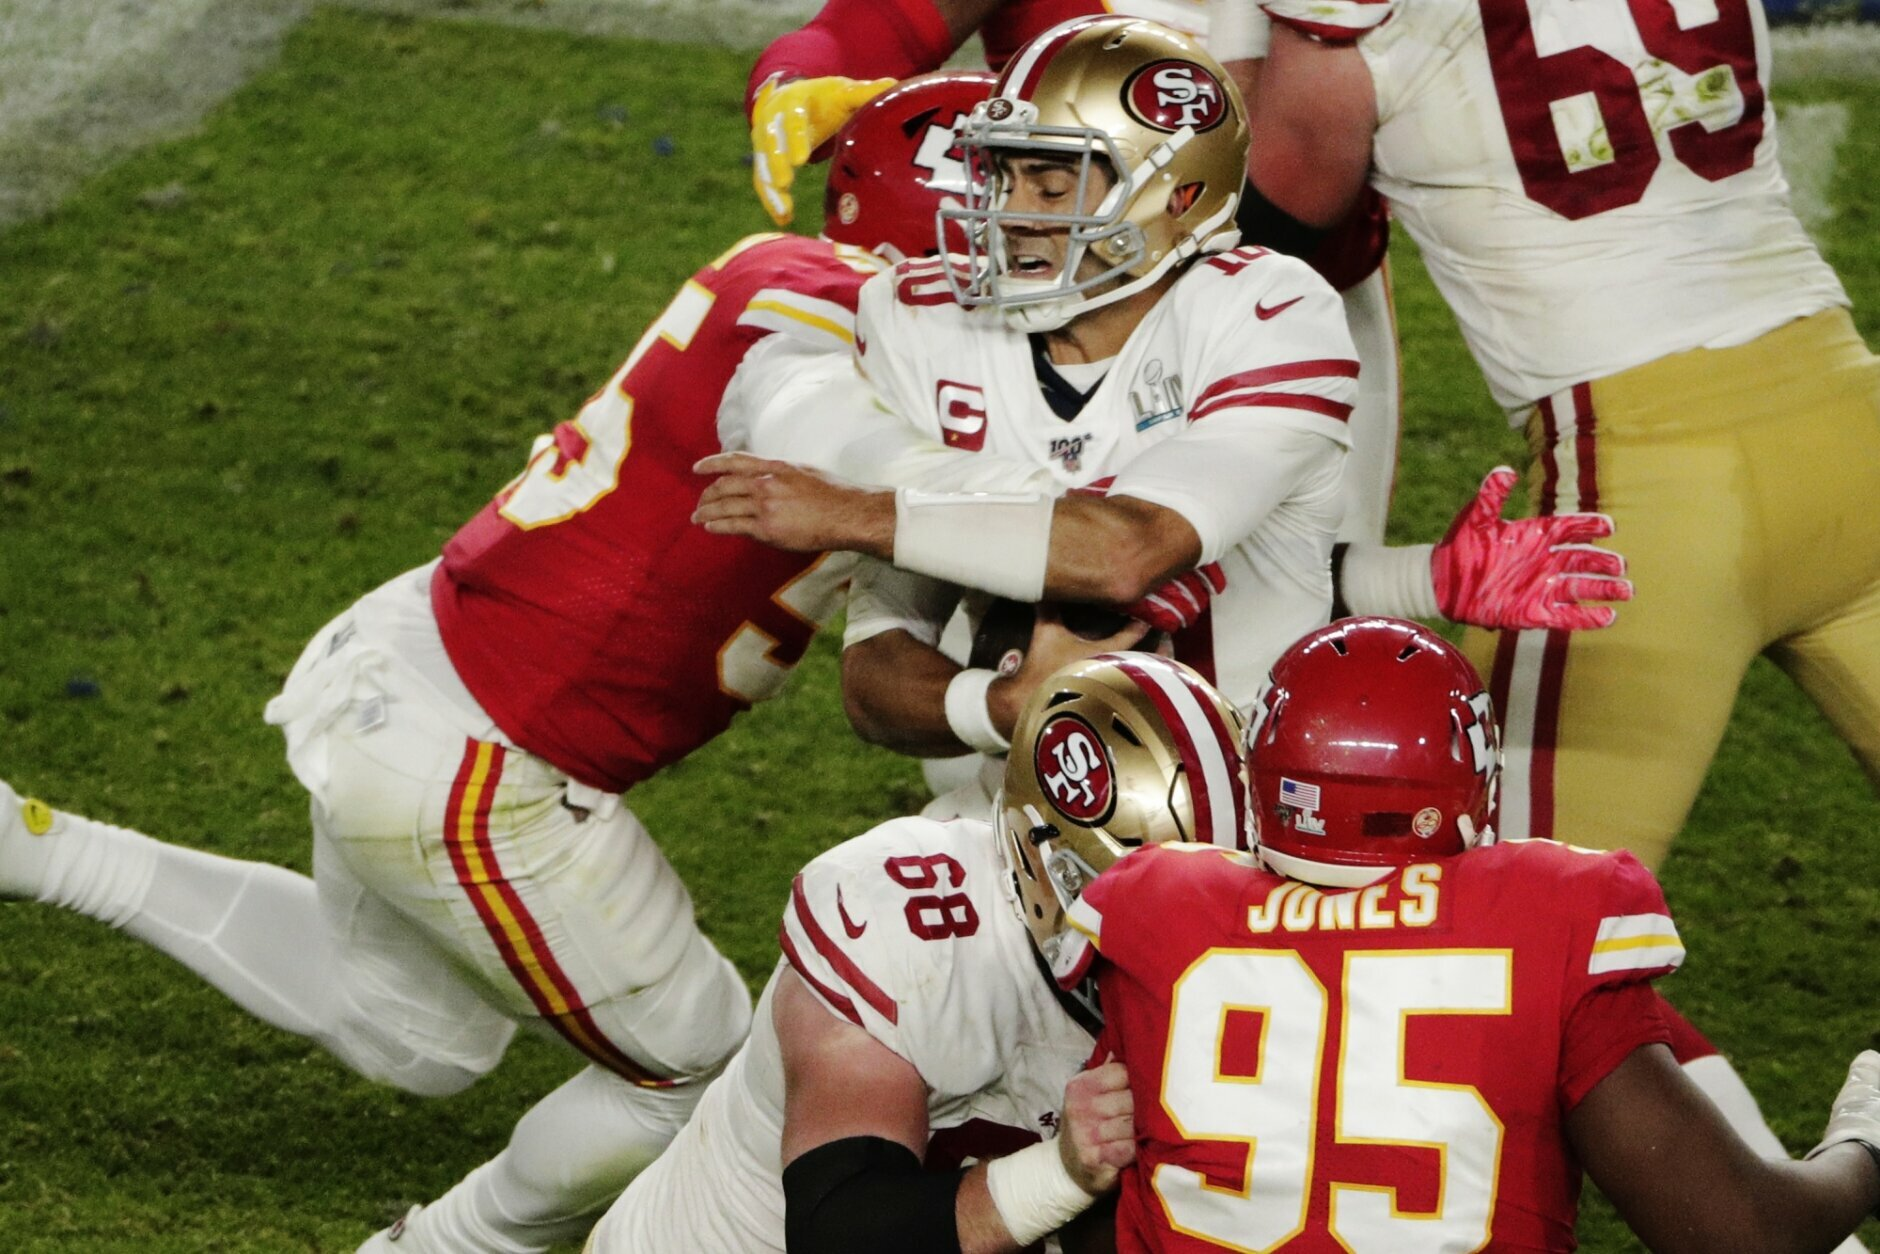 Kansas City Chiefs' Frank Clark (55) sacks San Francisco 49ers quarterback Jimmy Garoppolo (10), during the second half of the NFL Super Bowl 54 football game Sunday, Feb. 2, 2020, in Miami Gardens, Fla. (AP Photo/Charlie Riedel)